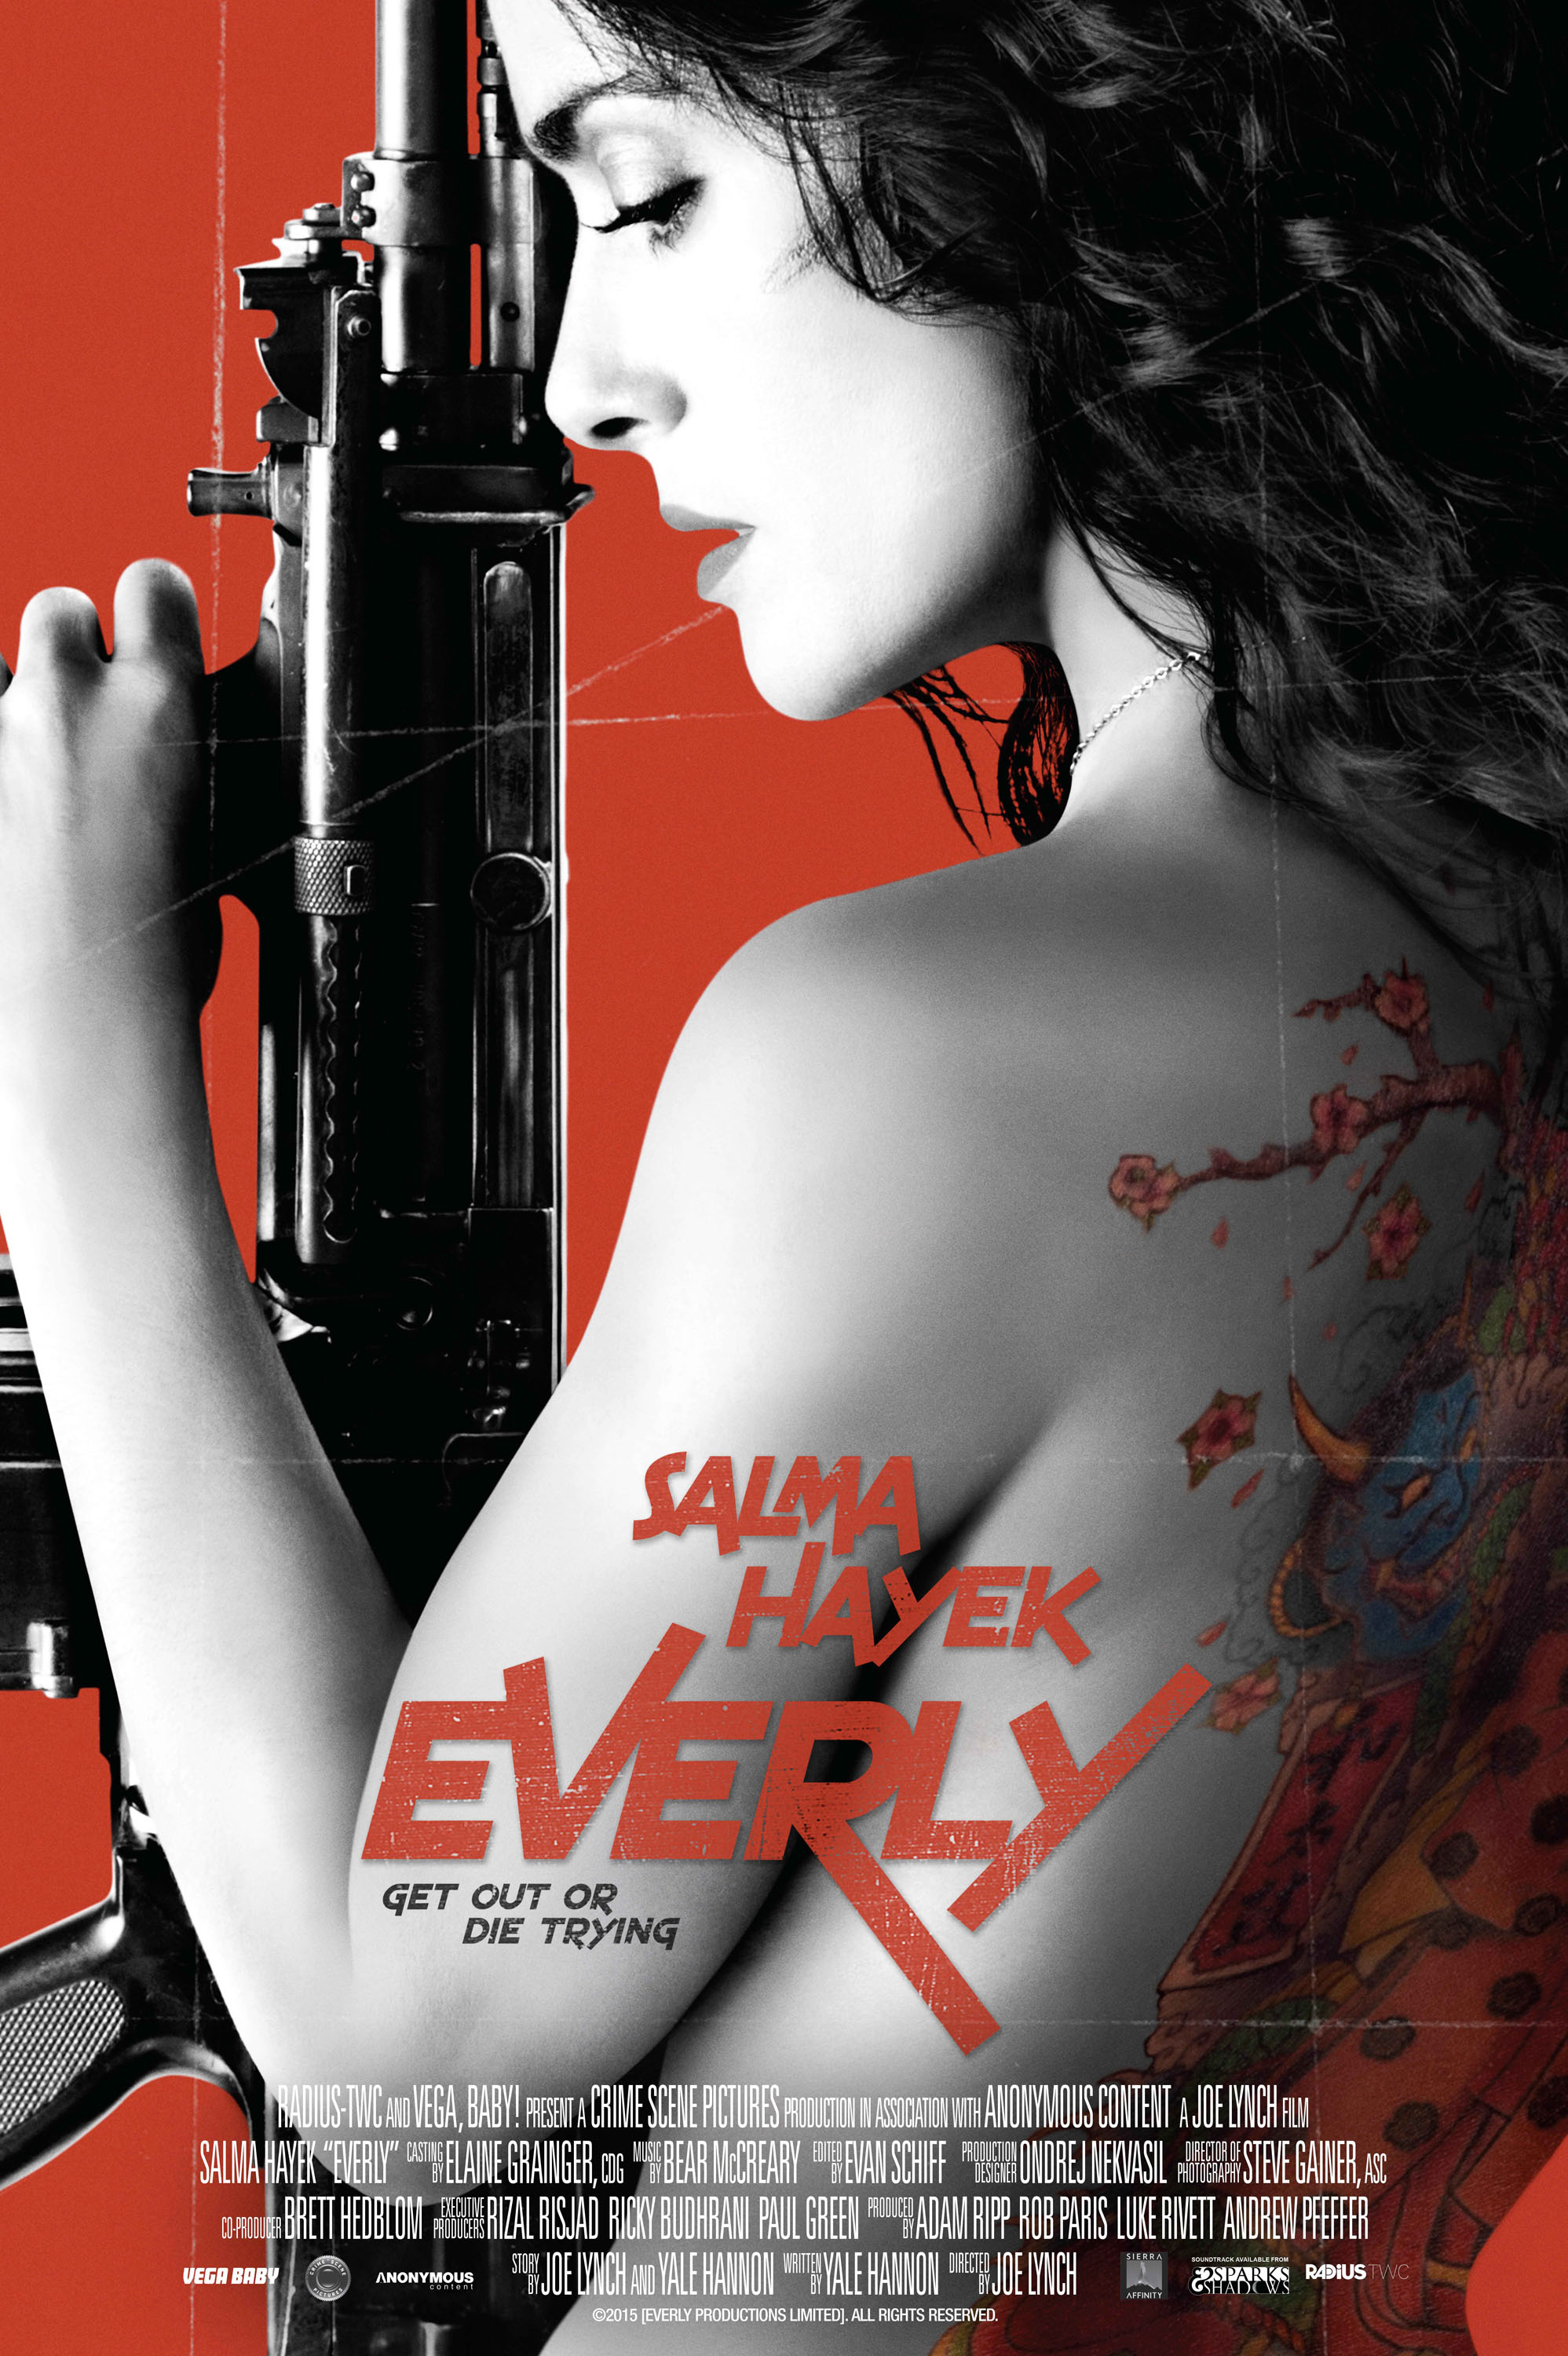 everly-poster-image.jpg